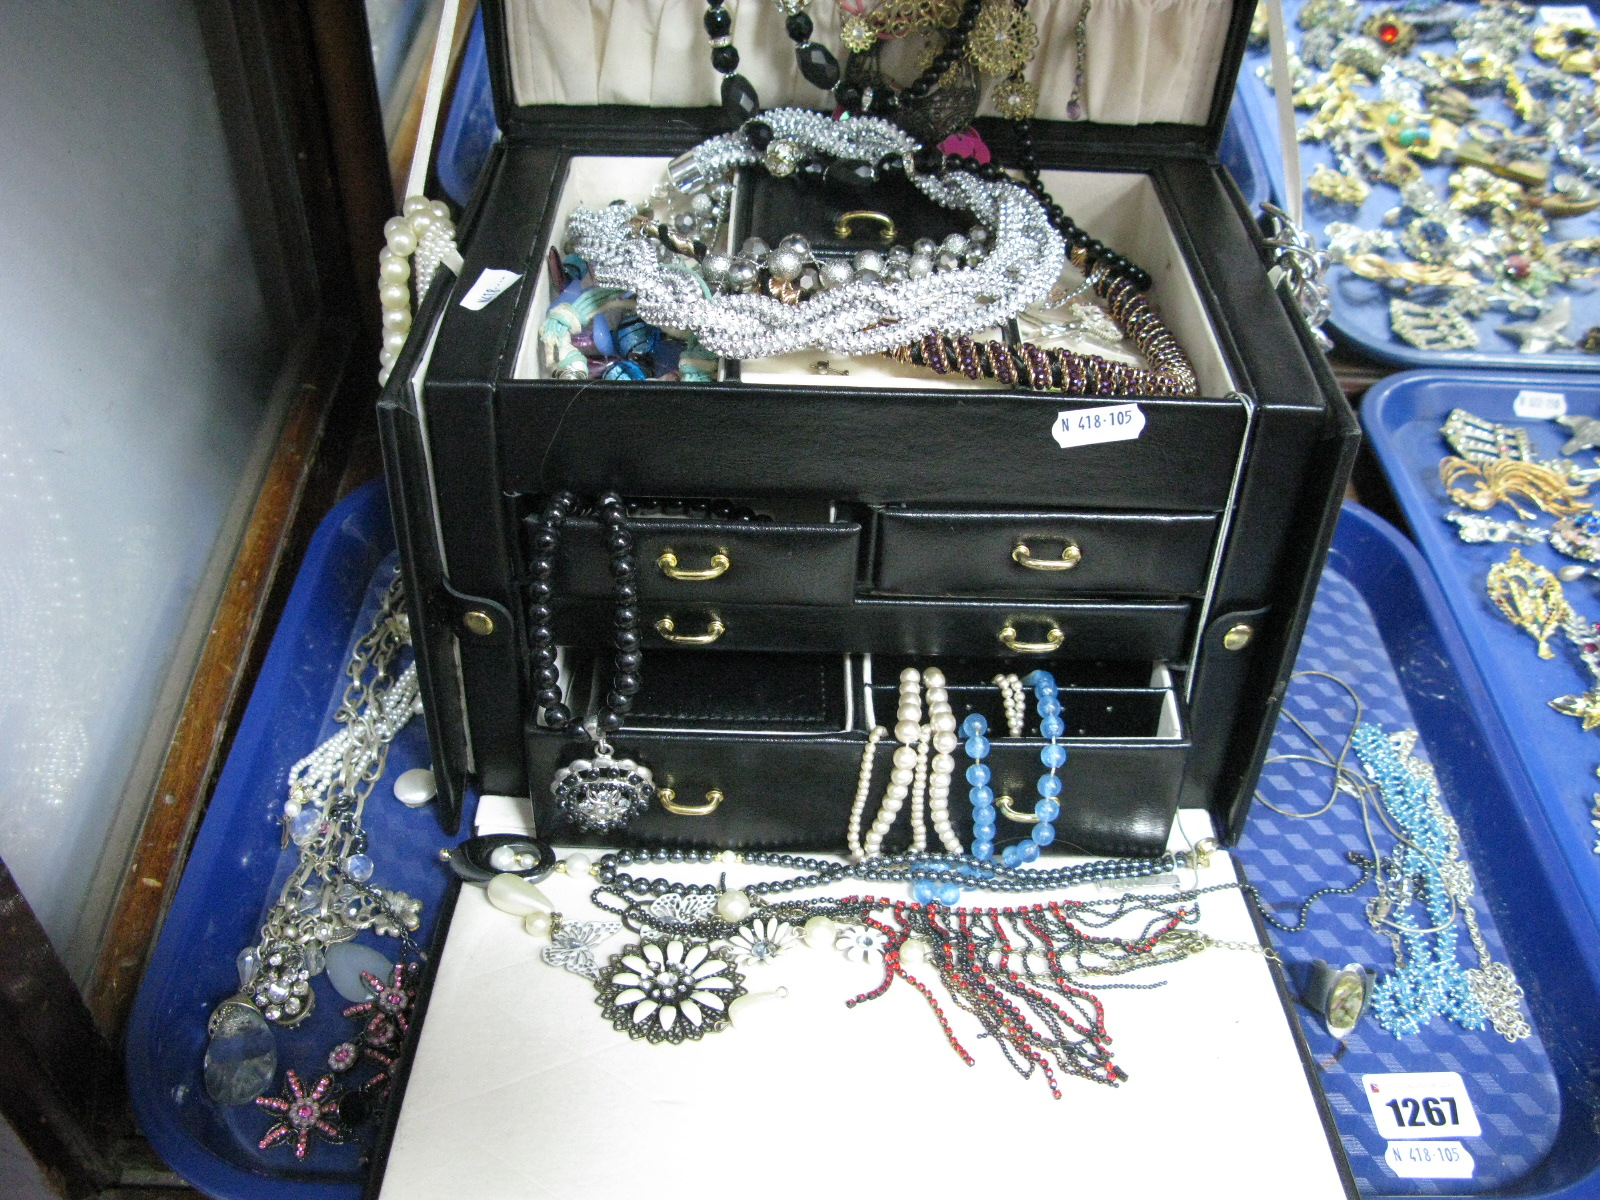 Lot 1267 - A Large Black Jewellery Box, together with assorted costume jewellery, imitation pearls, etc:- One